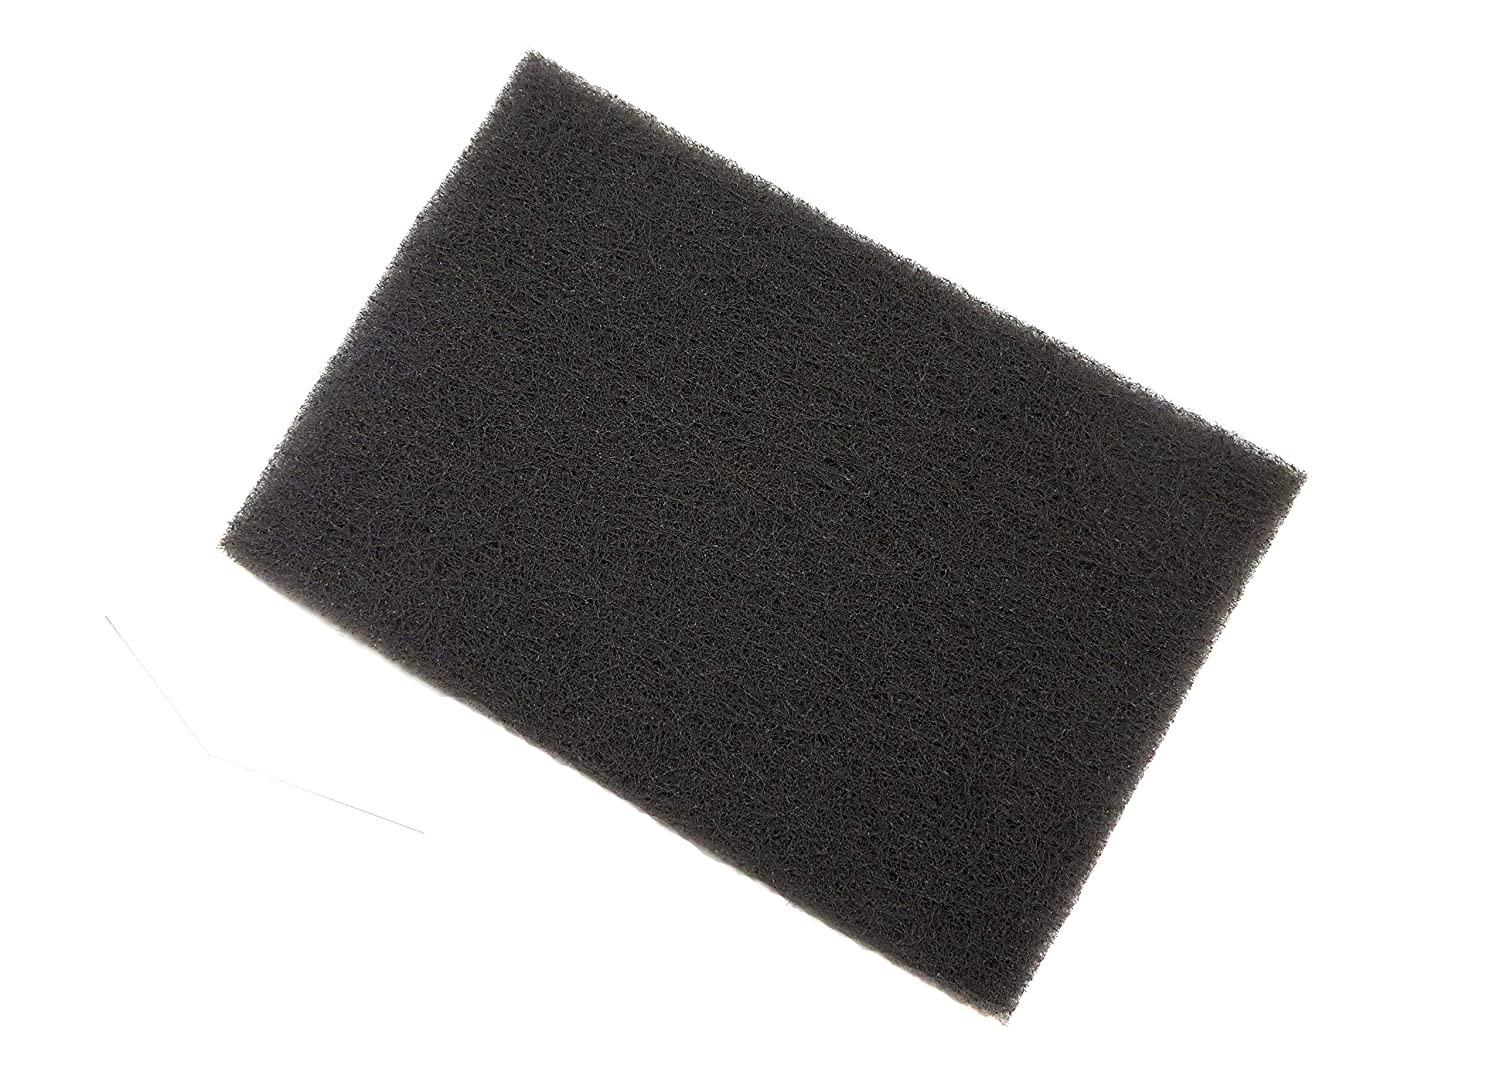 7448 Hand Pads Ultra Fine Grey Comparable to 00 Steel Wool 6 Inch x 9 Inch TM Scotch-Brite 1 TM 3M